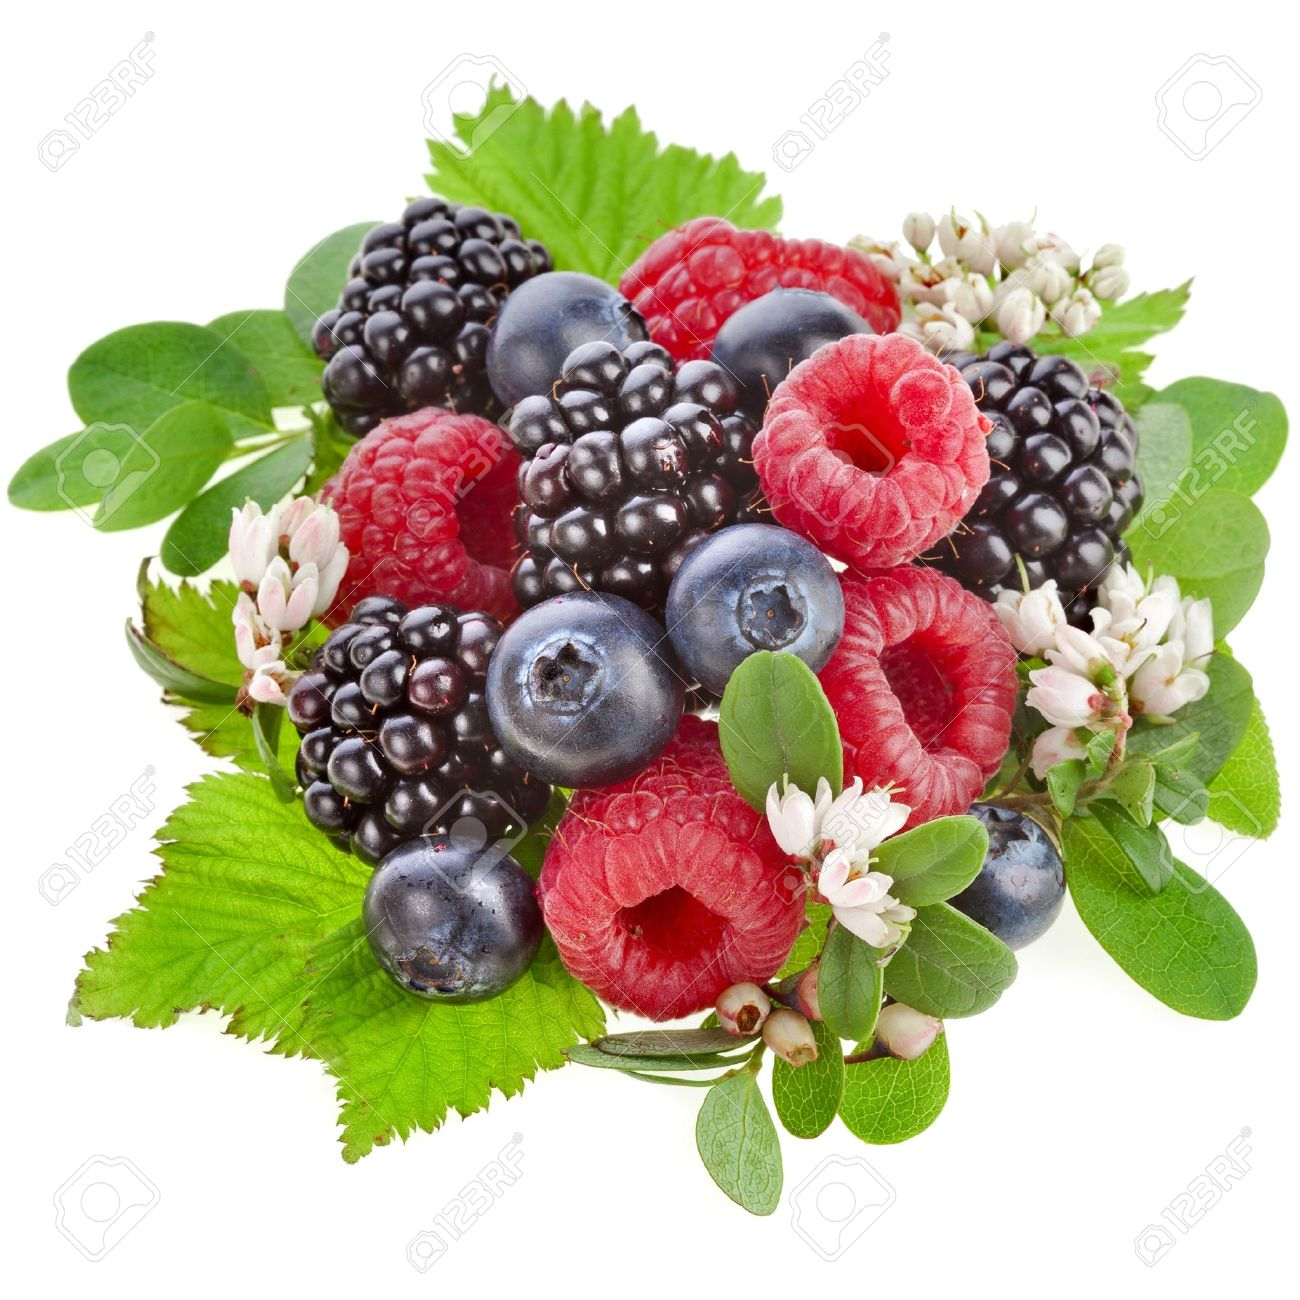 Fresh Forest Berries With Flower Isolated On A White Background.